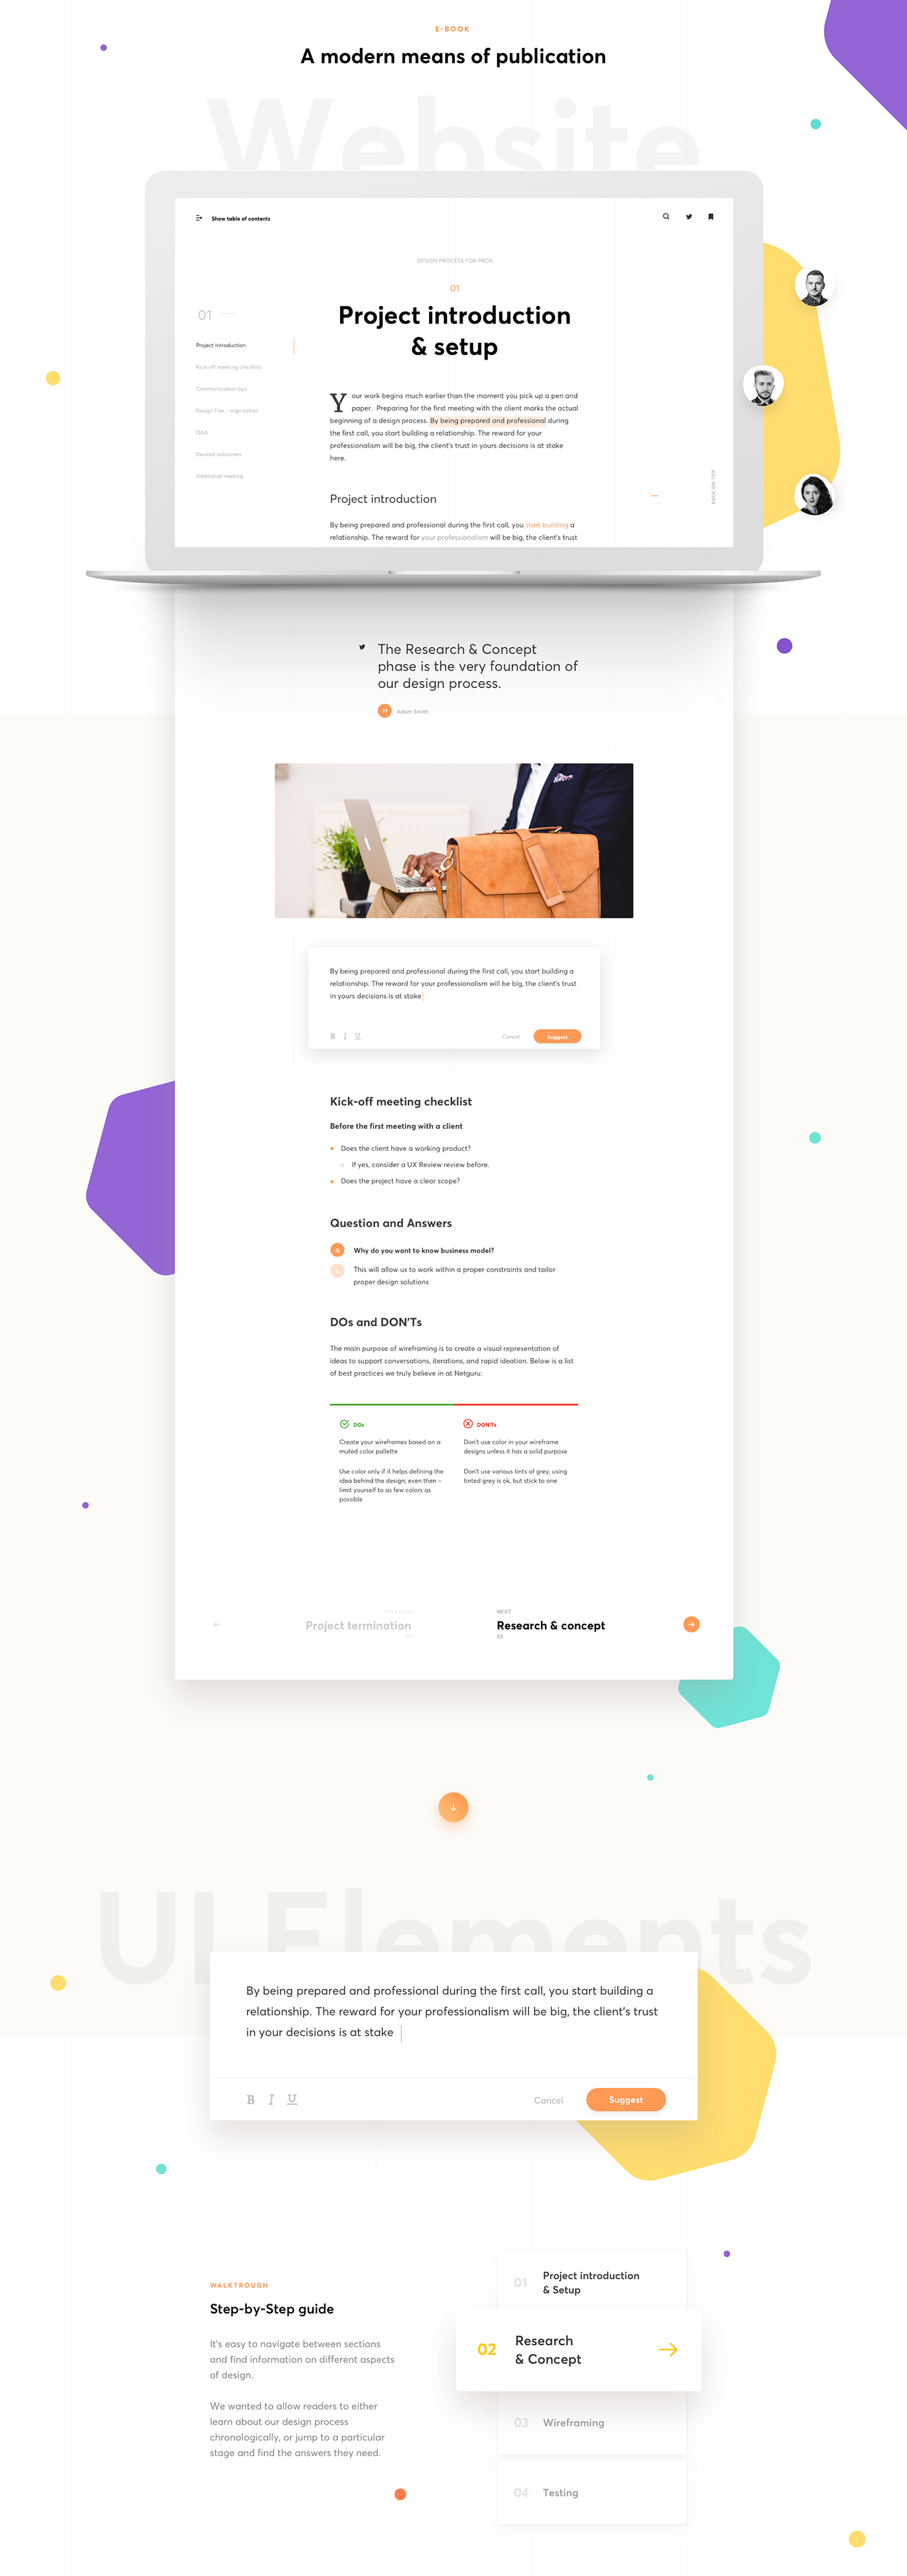 ebook publication design process resource Guide design research wireframing